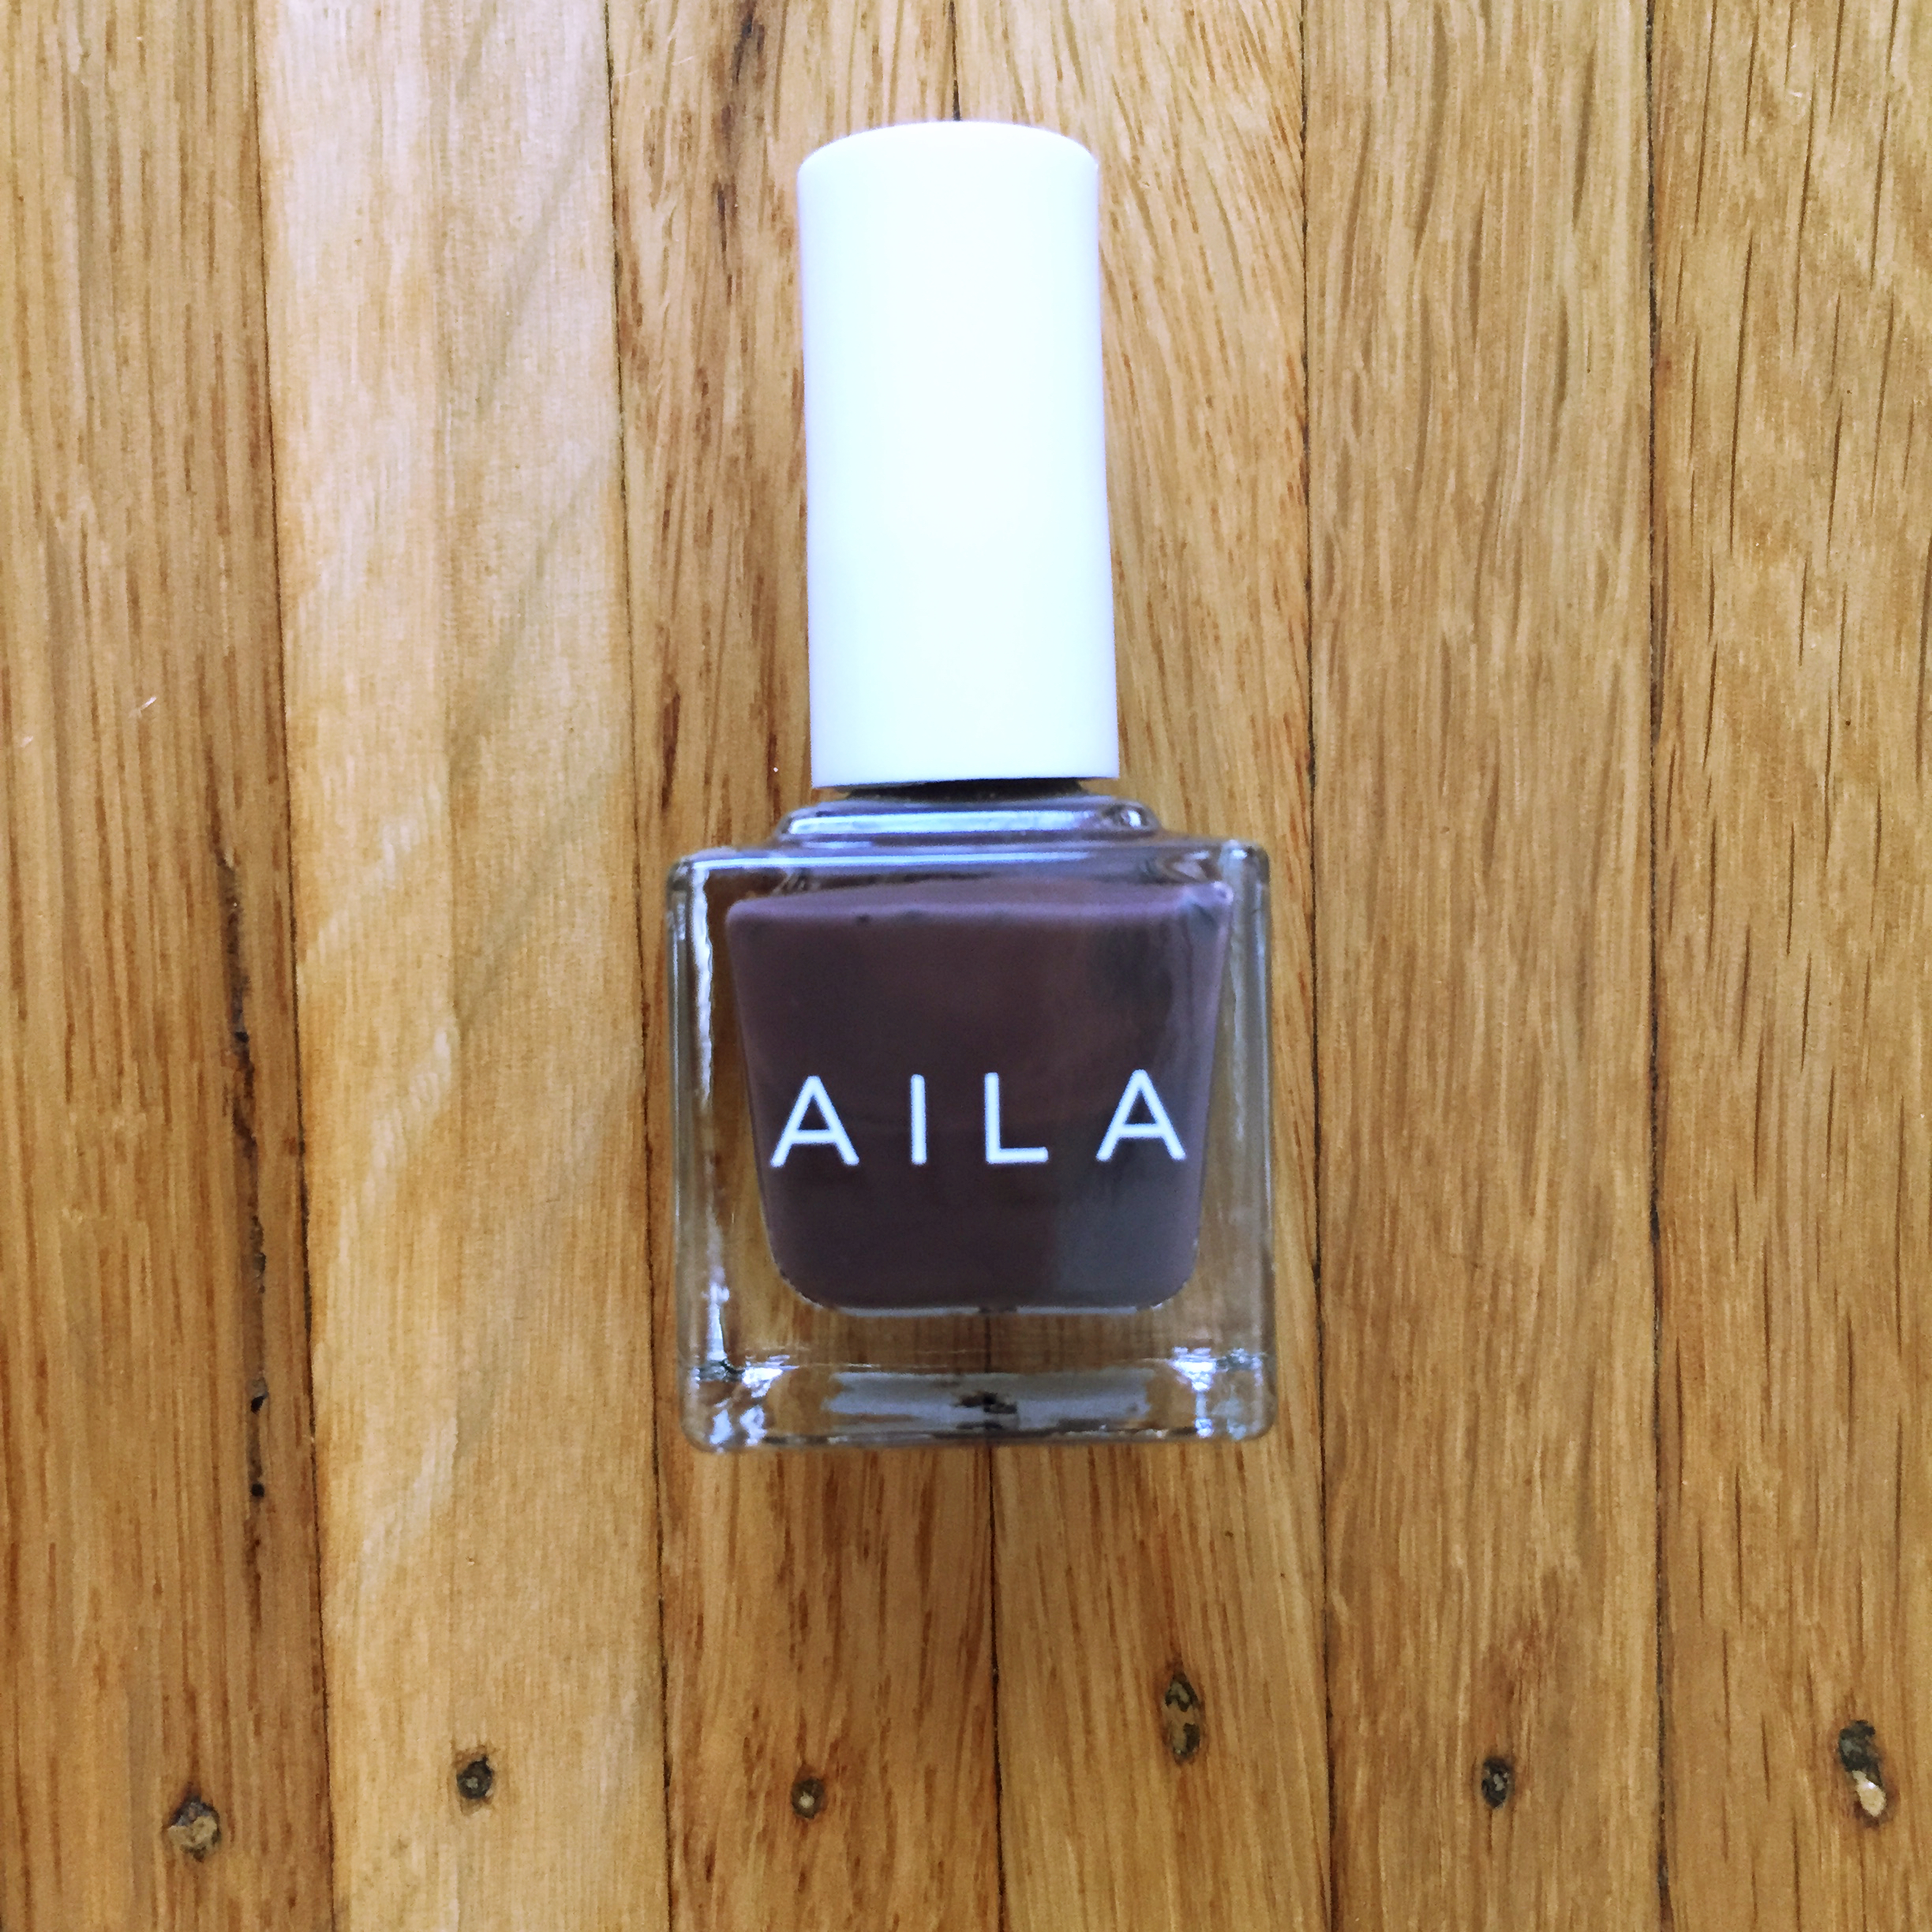 AILA Cosmetics Luxury Nail Lacquer in Mister Pookies